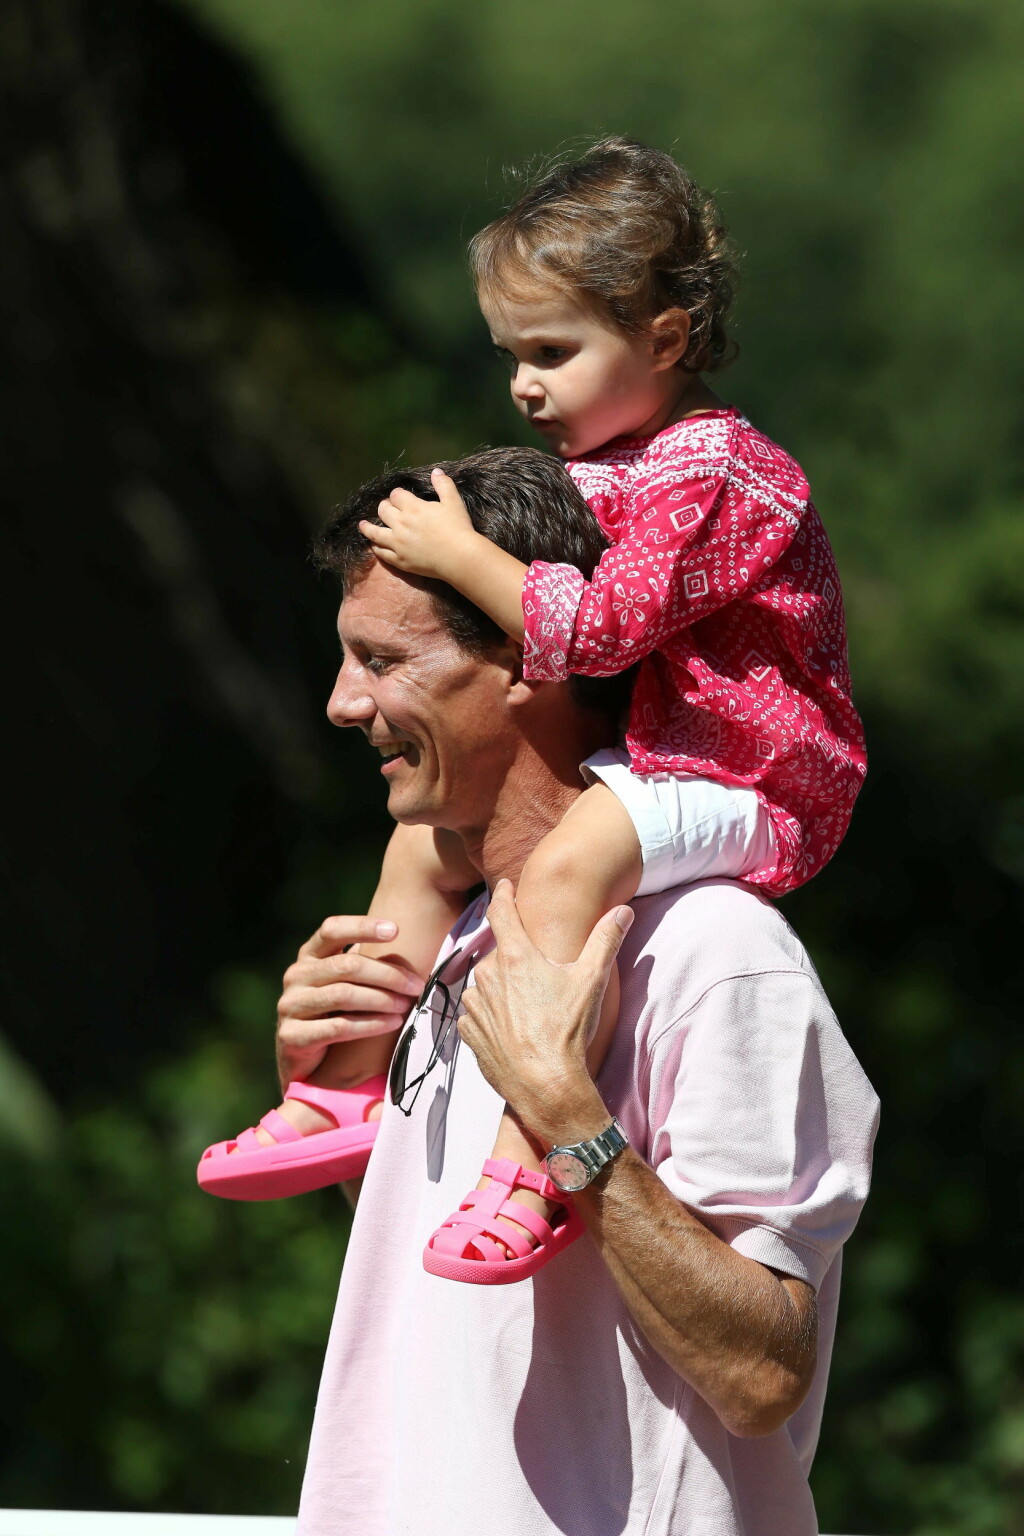 SITTER TRYGT: Prins oachim med prinsesse Athena på hodet. Foto: action press/All Over Press